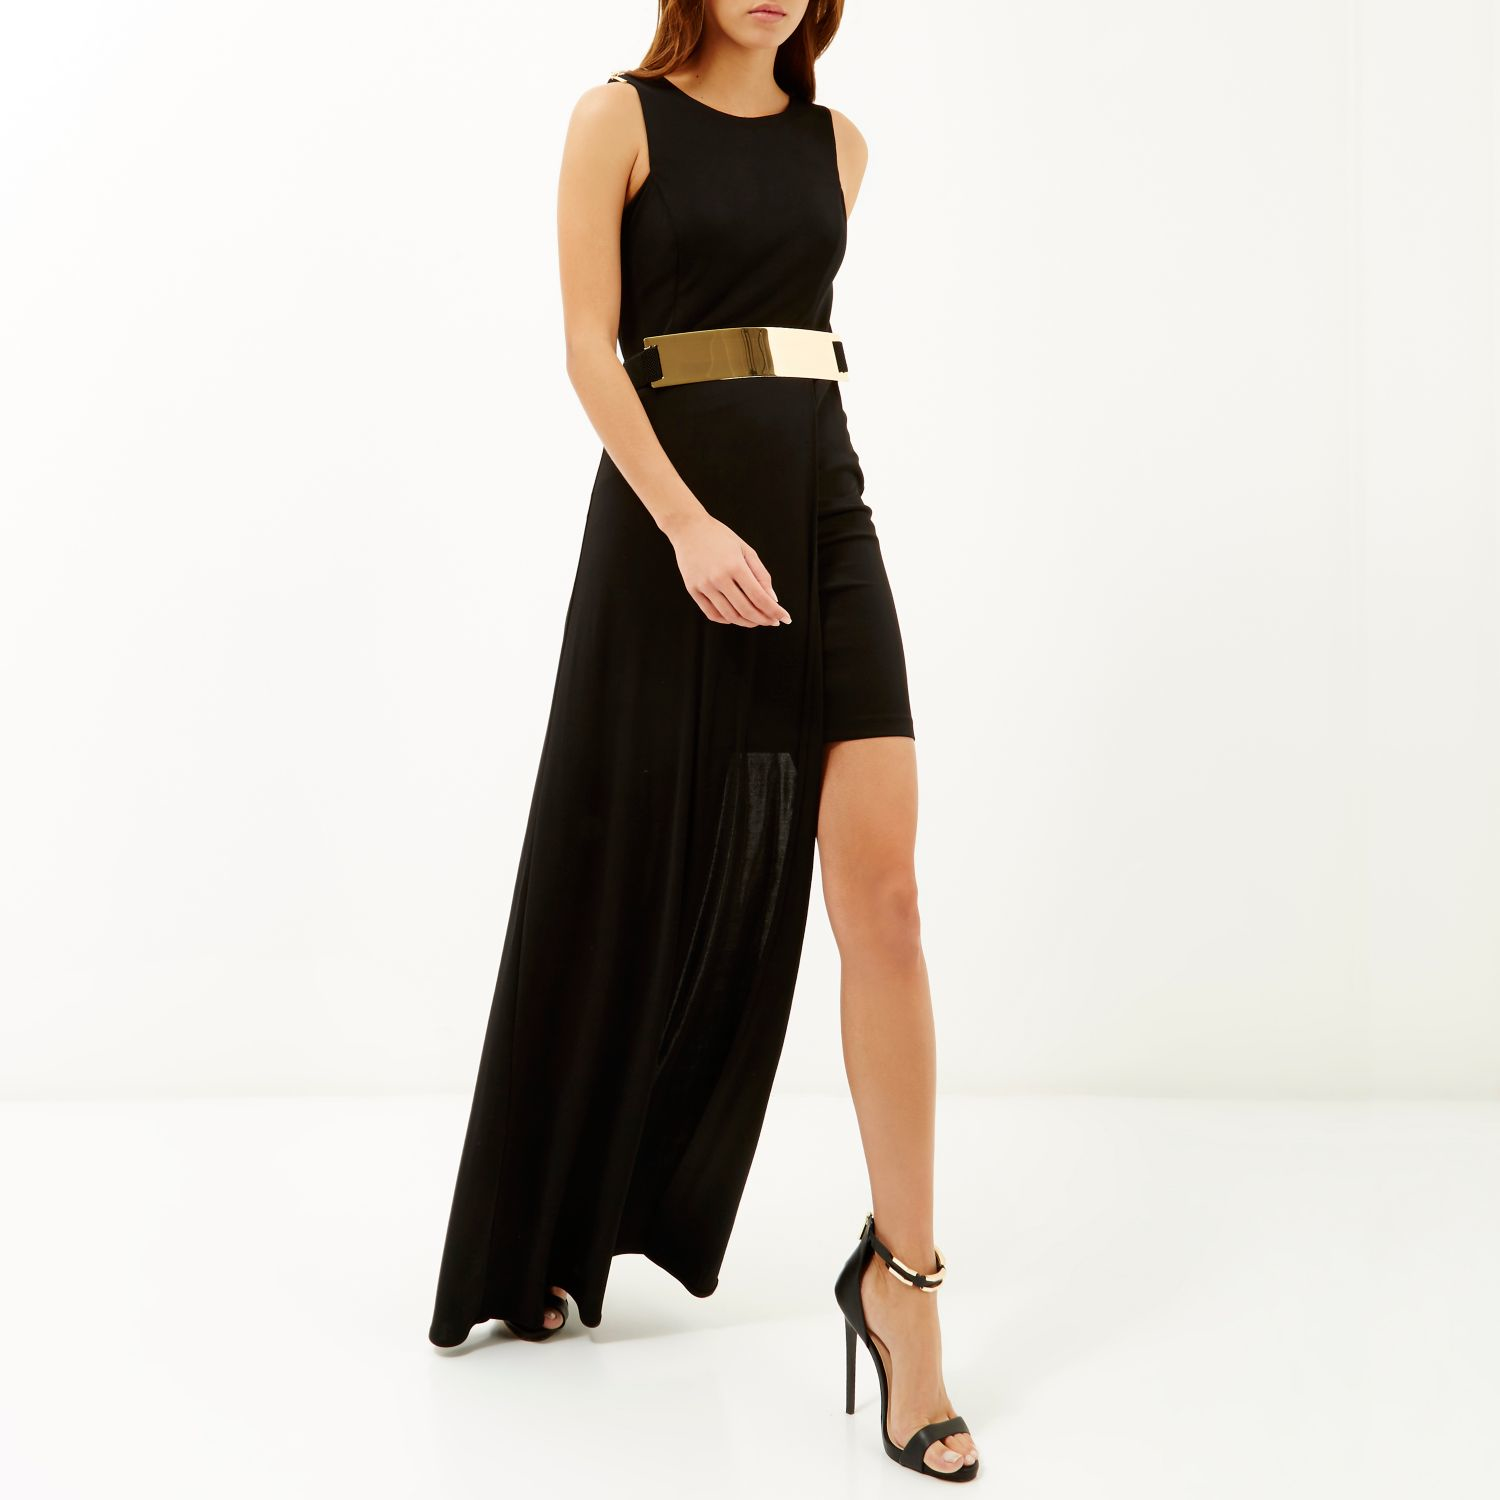 Black dress gold belt - Gallery